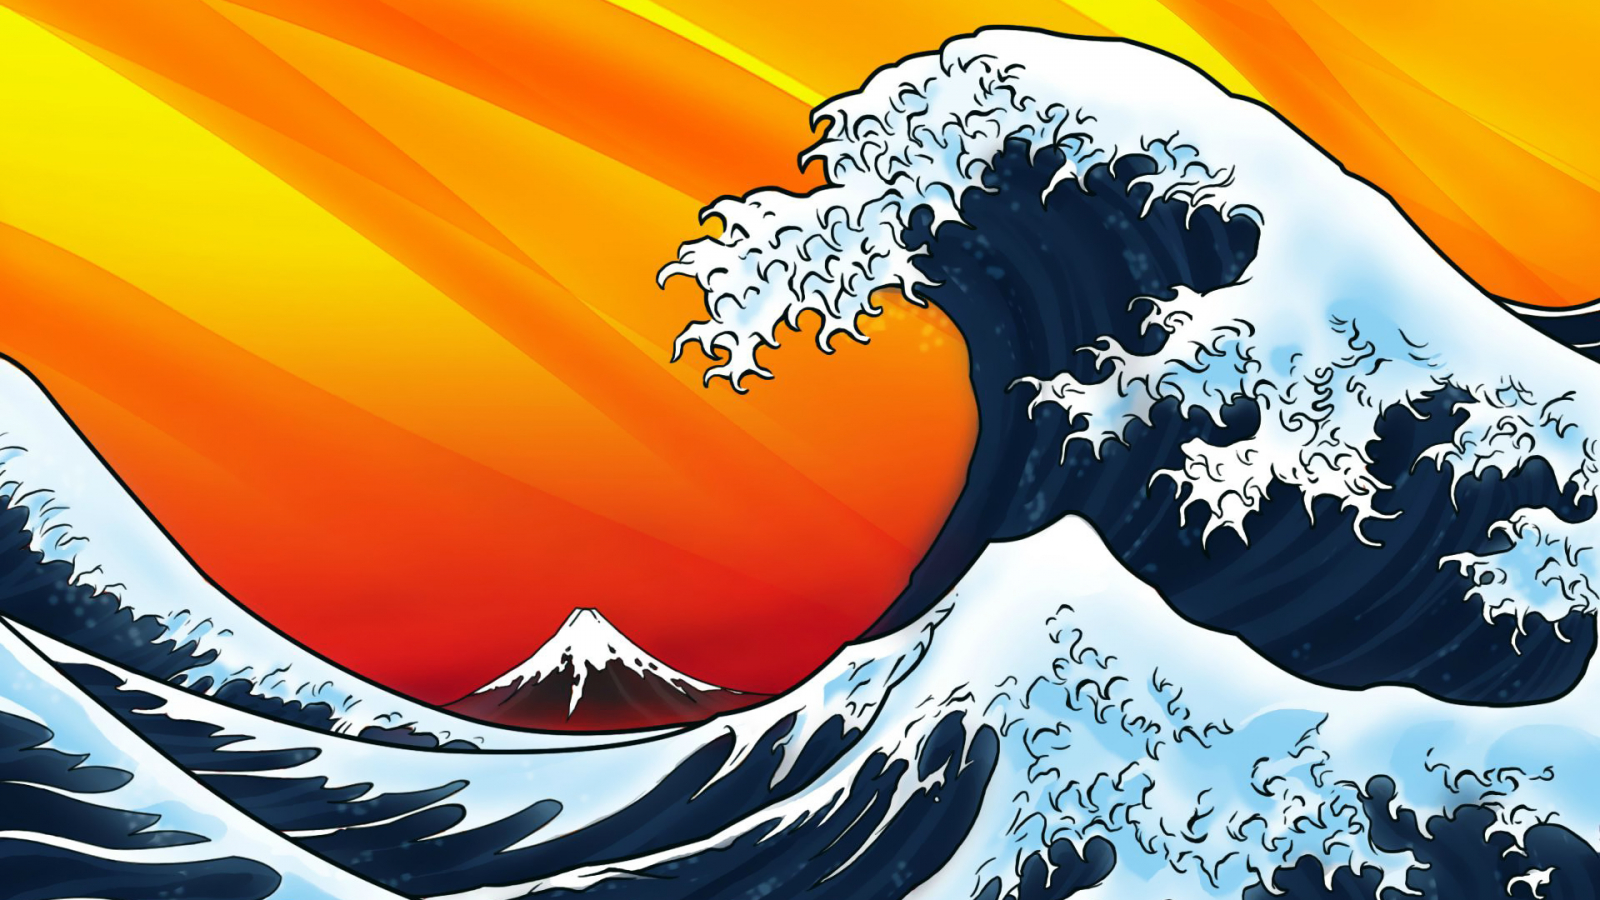 Free Download Japanese Style Waves Wallpaper Vector